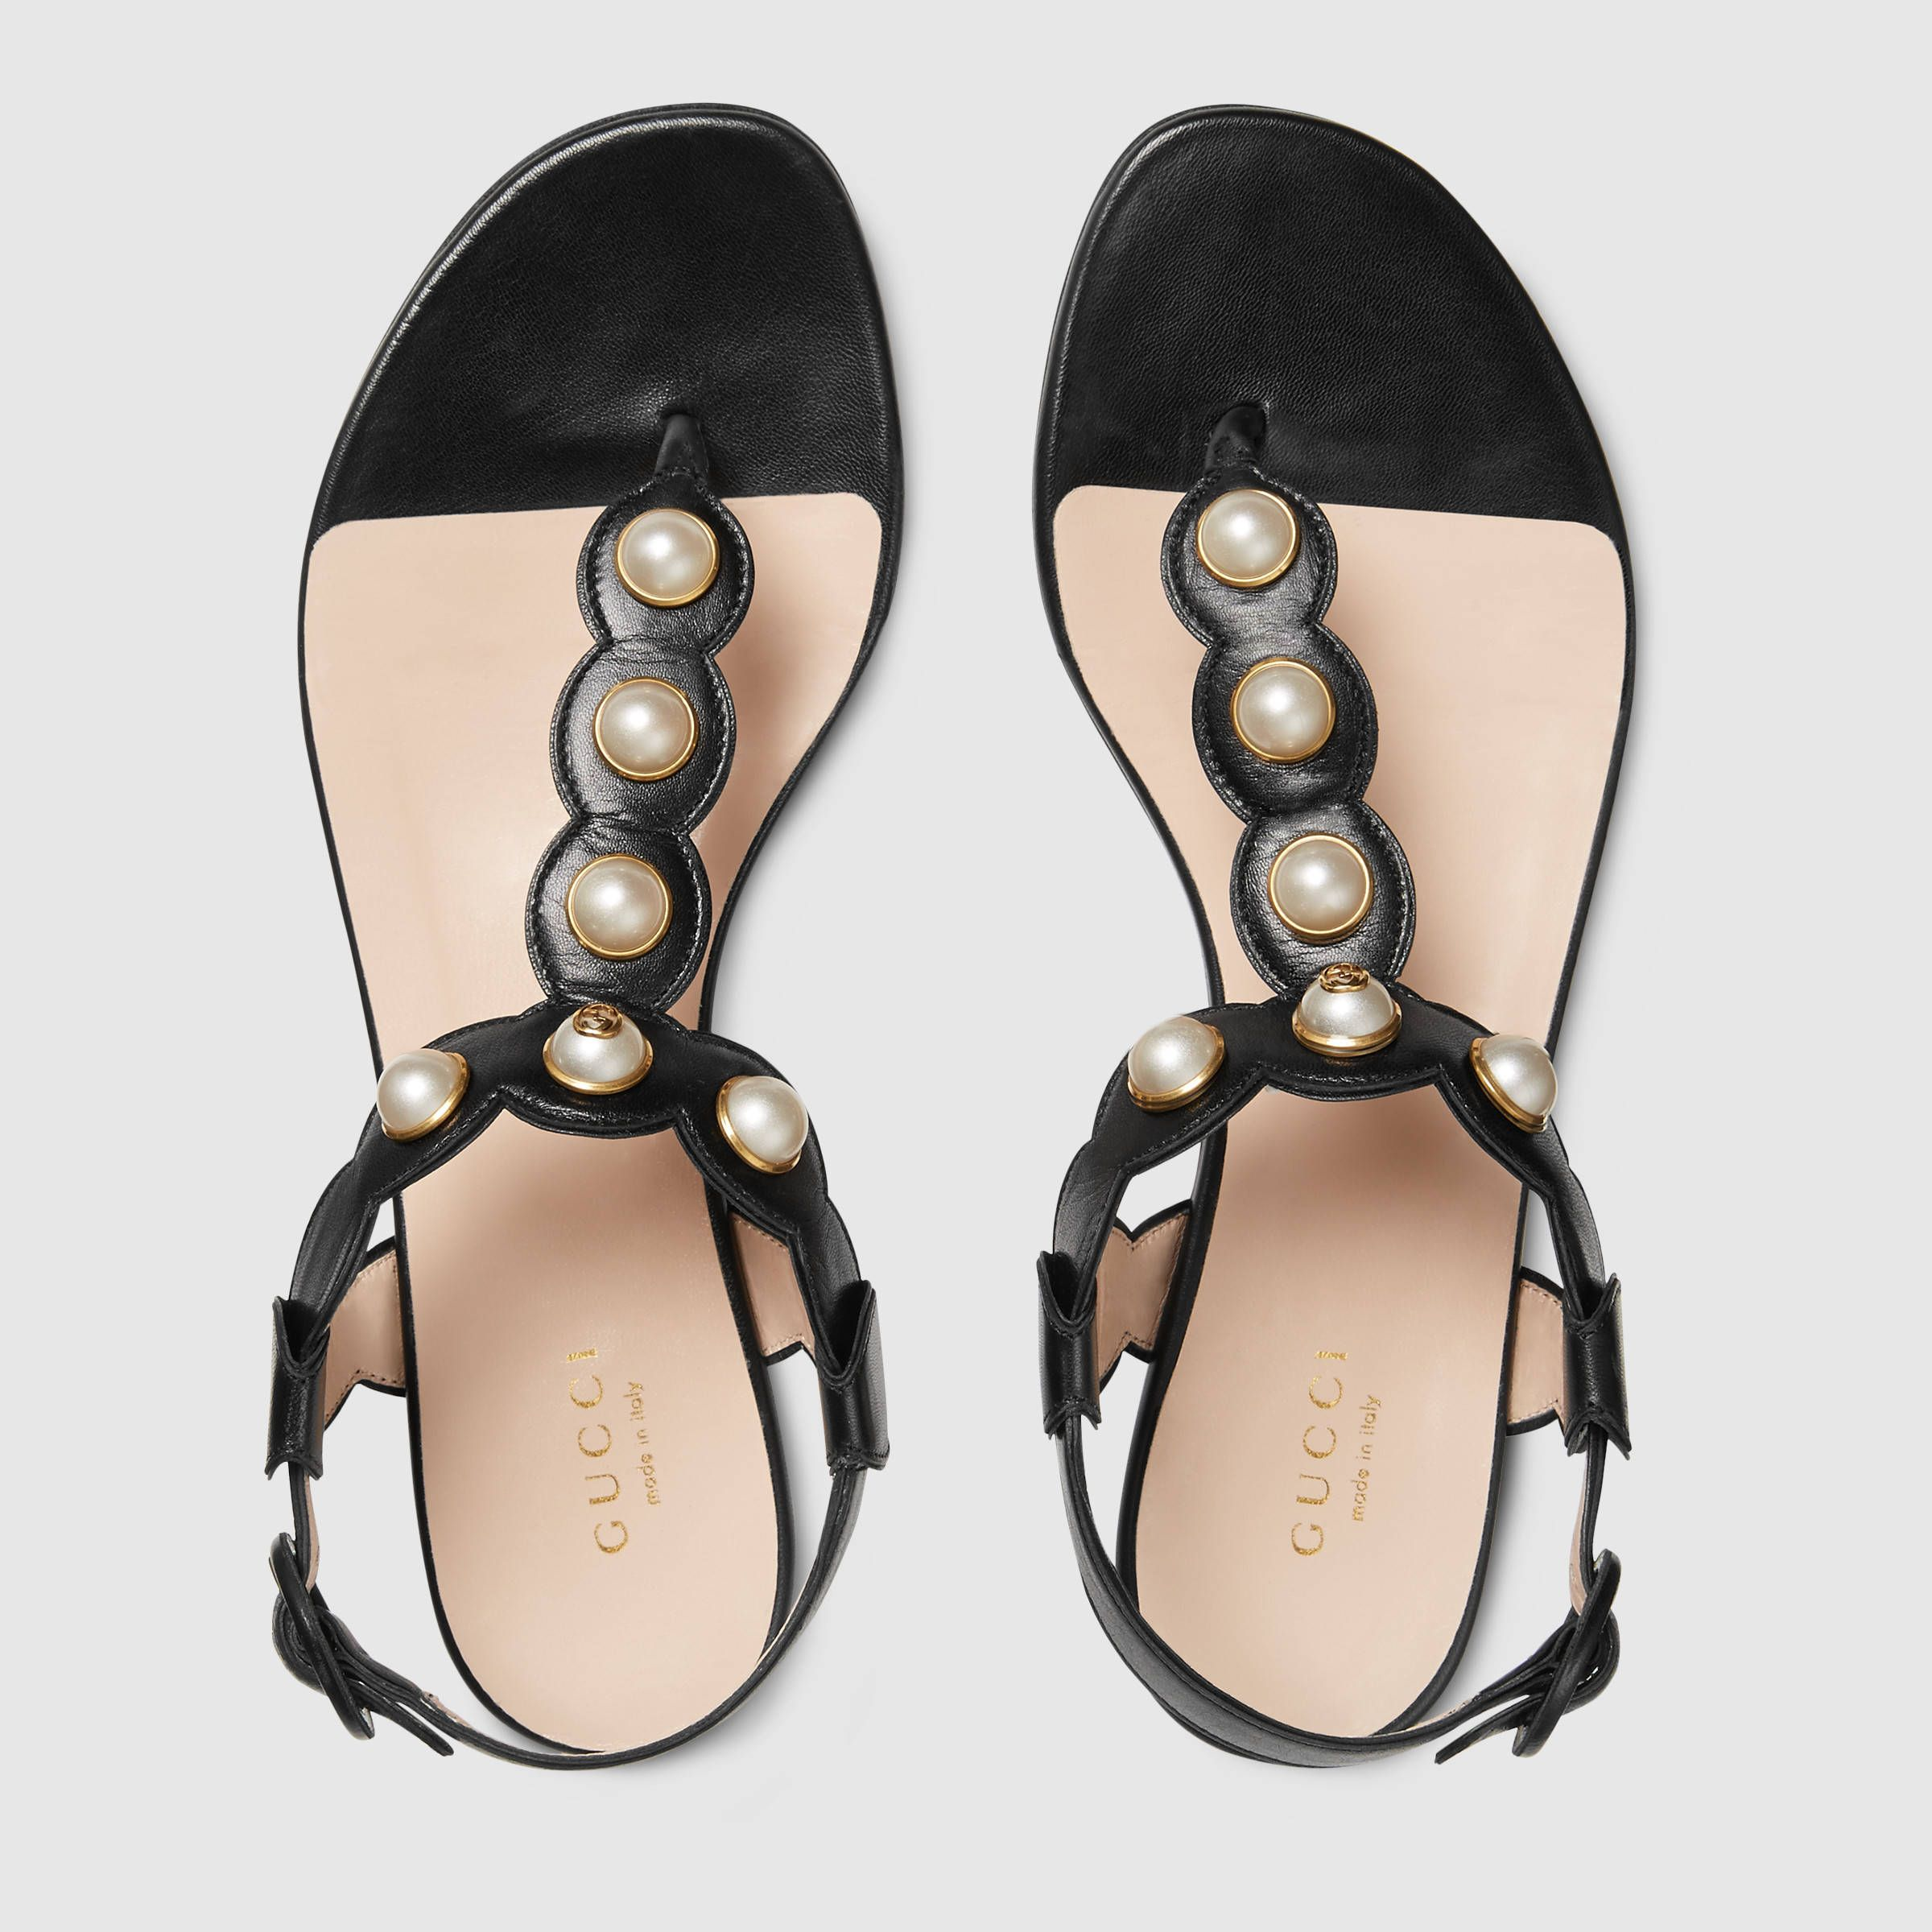 Womens sandals marshalls - Gucci Women Willow Leather Thong Sandal 424085c9d001000 Gucci Pearl Leather Sandals Summer 2016